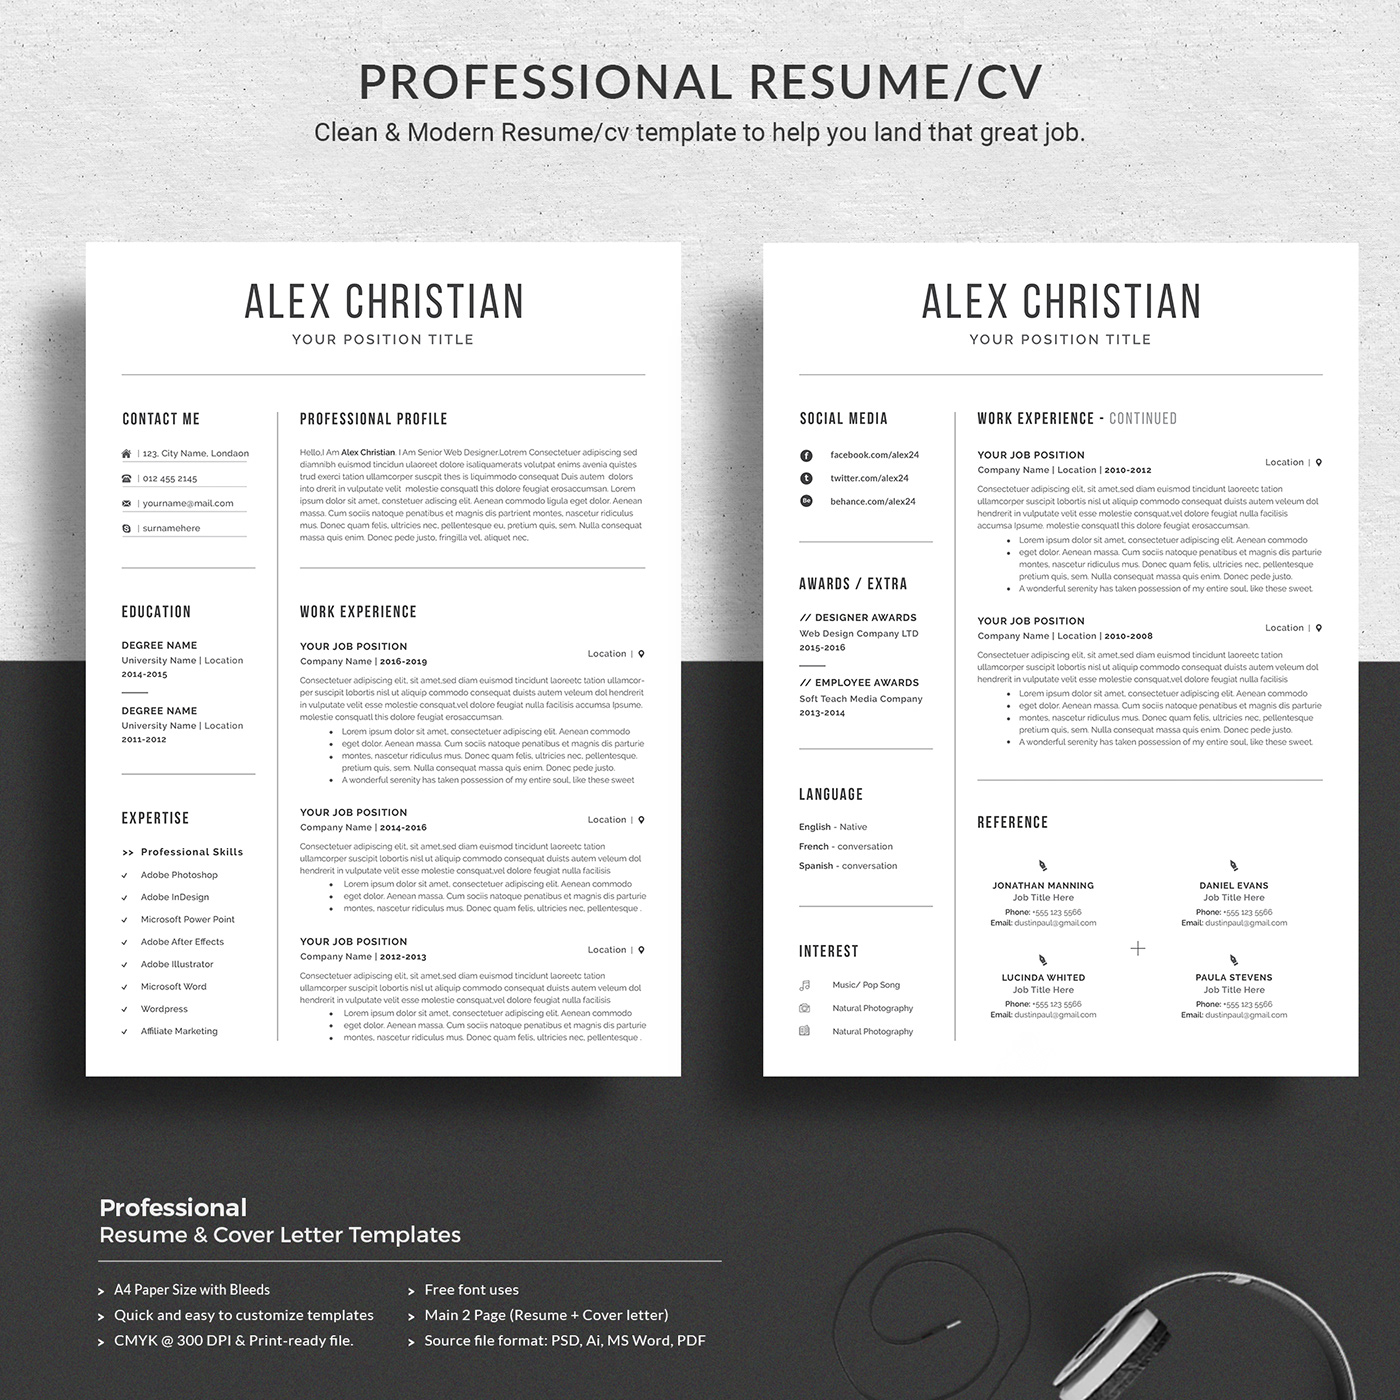 Professional Resume Templates Word on Behance